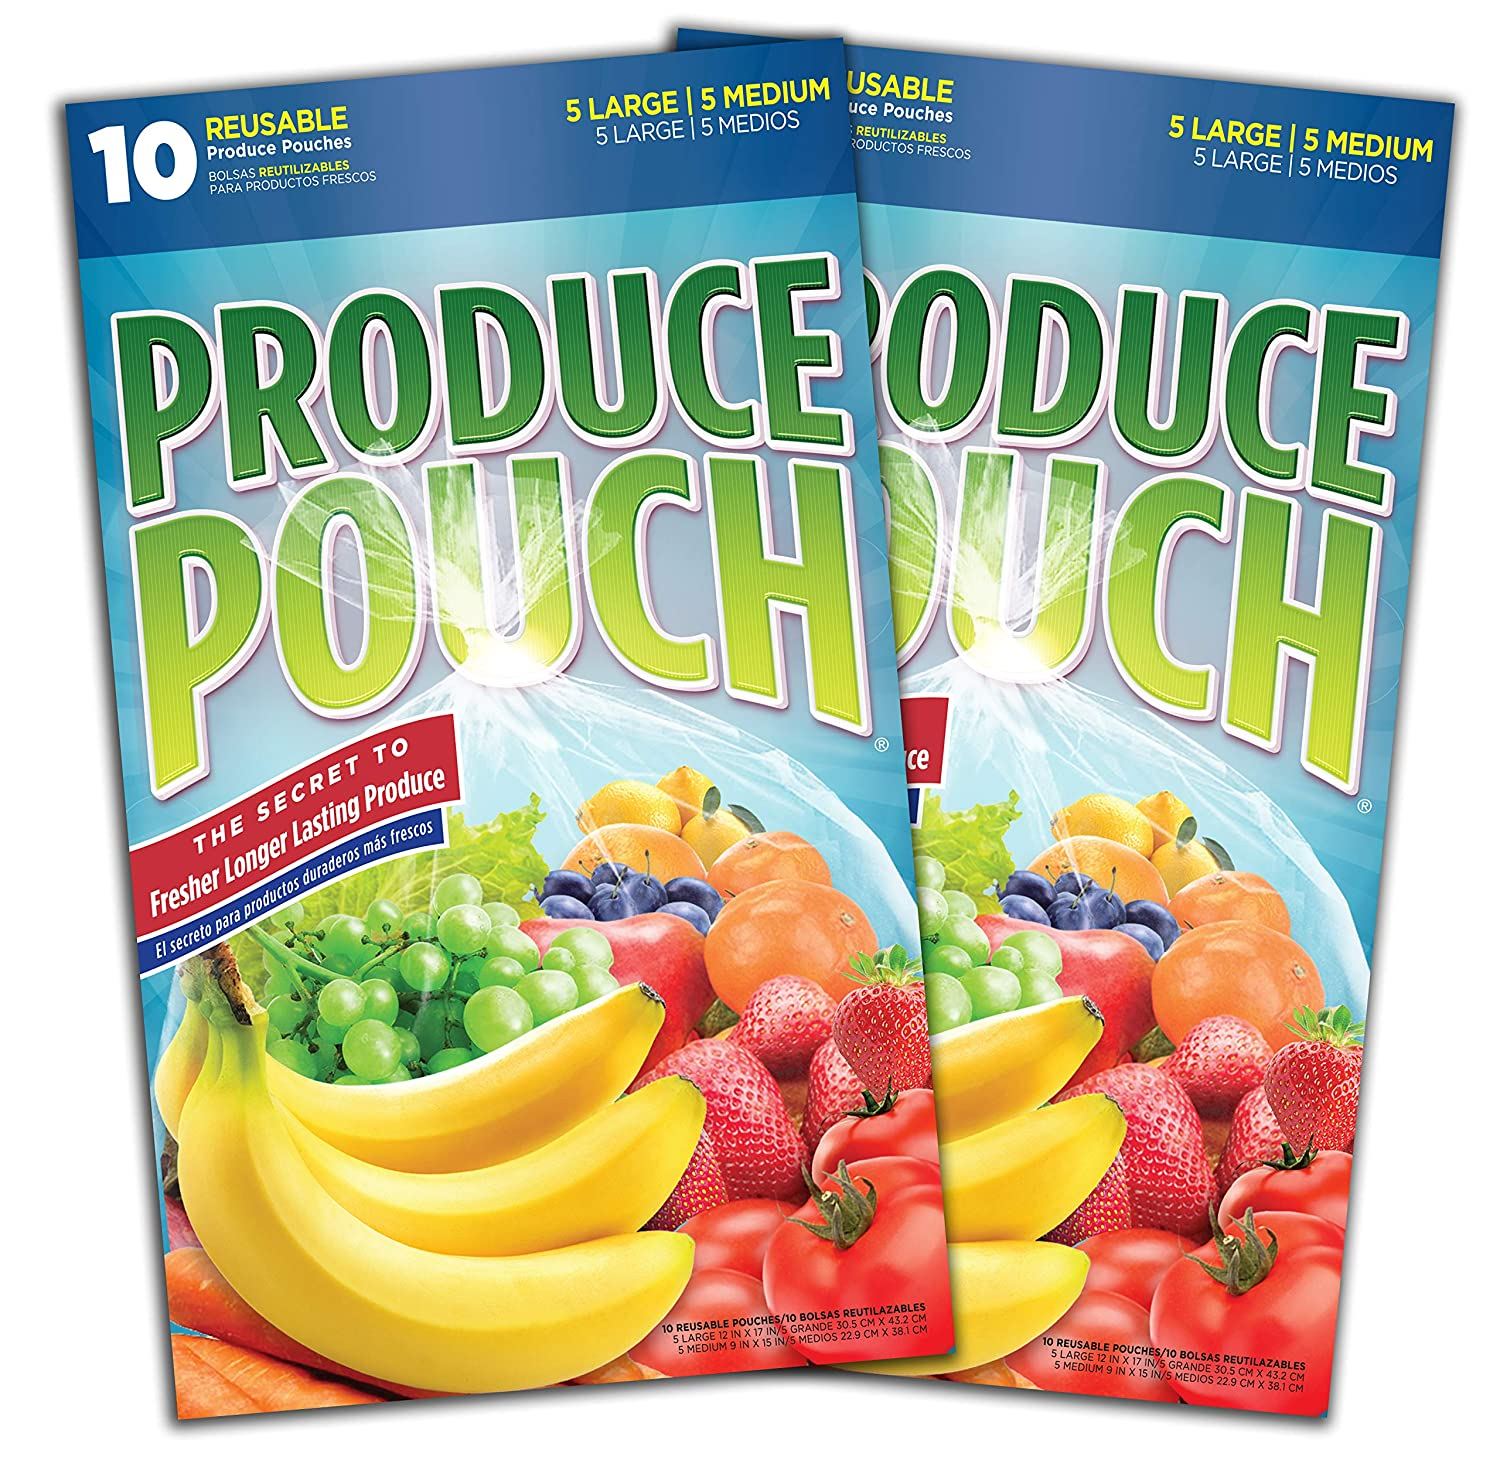 Produce Pouch-Keeps Produce Fresher Longer, reusable green bags preserve fruits, vegetables and flowers 2 packs (20 Bags)